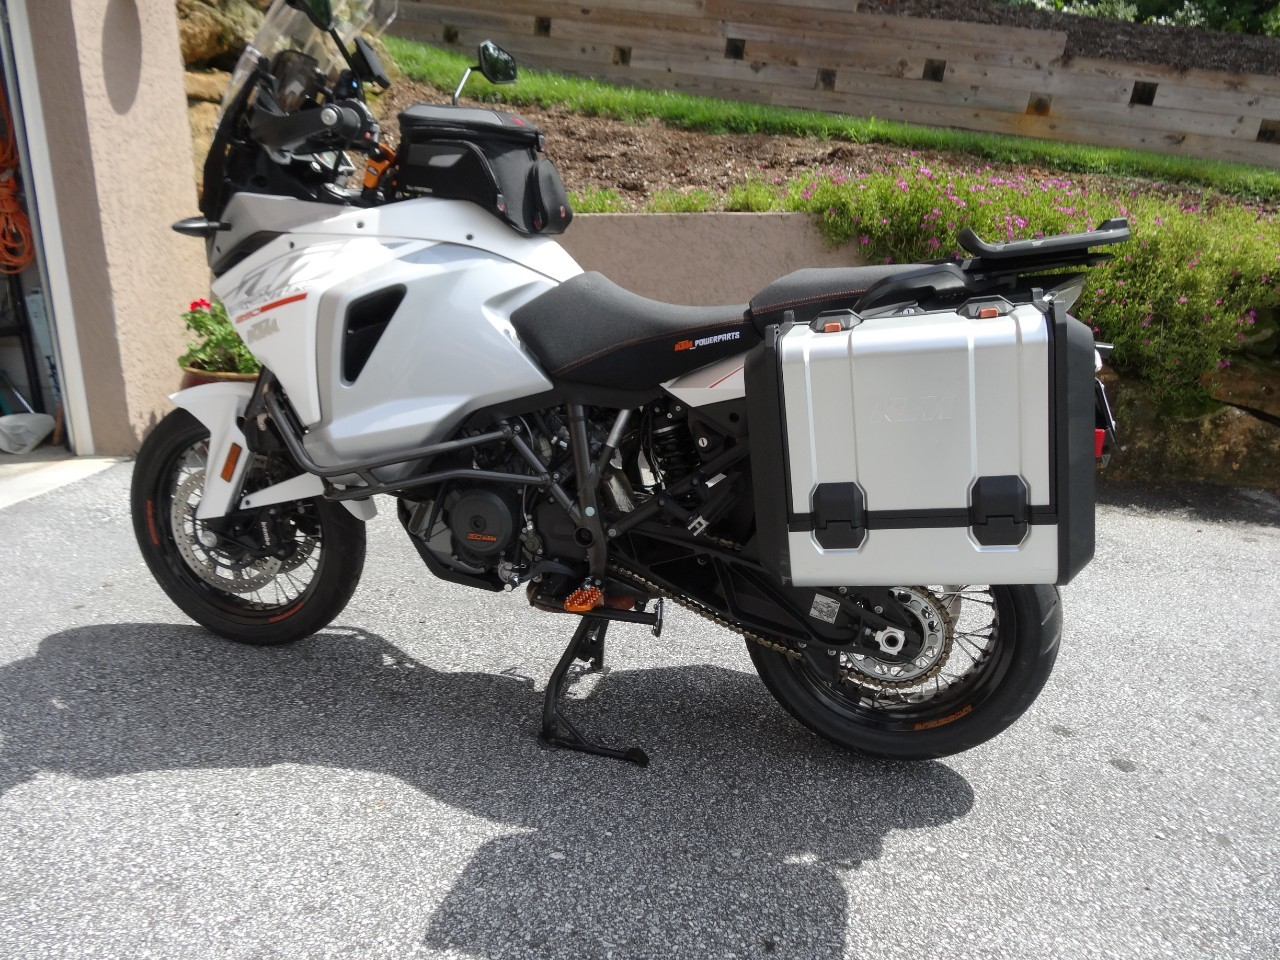 1090 R For Sale - Ktm Motorcycles - Cycle Trader